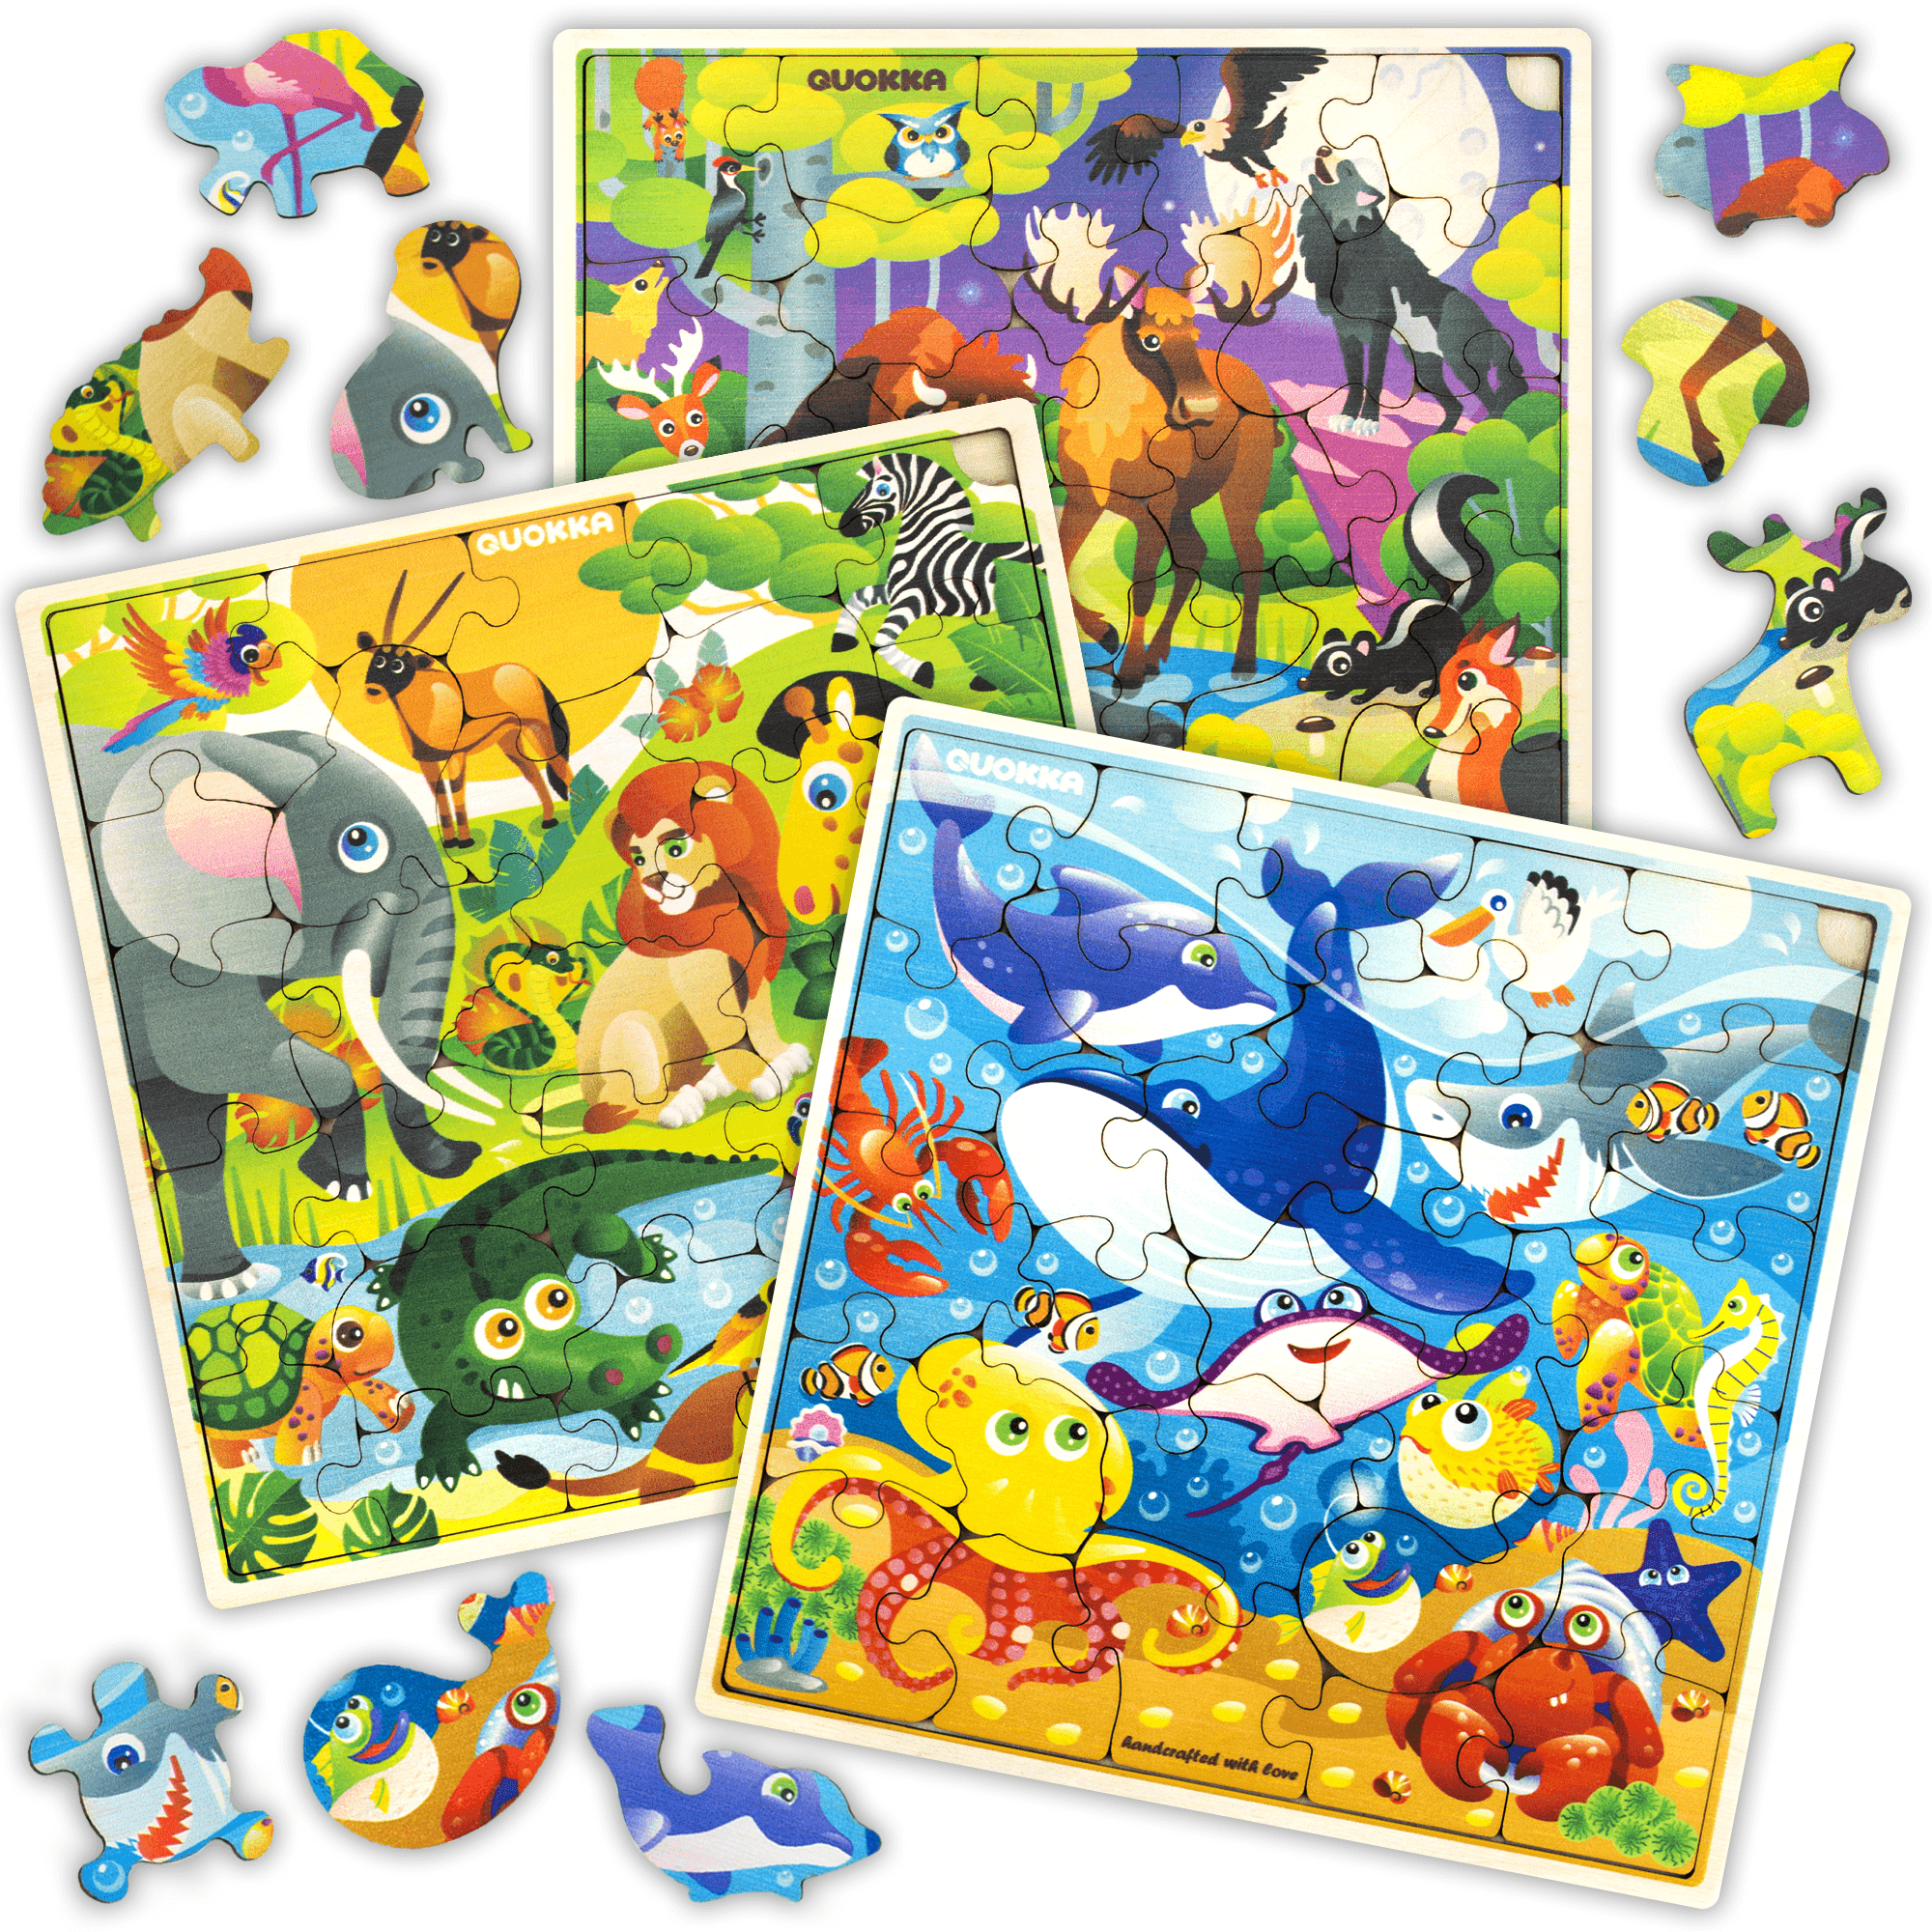 Wooden Jigsaw Puzzles for Kids Ages 4-8, 3 Pack Puzzles ...